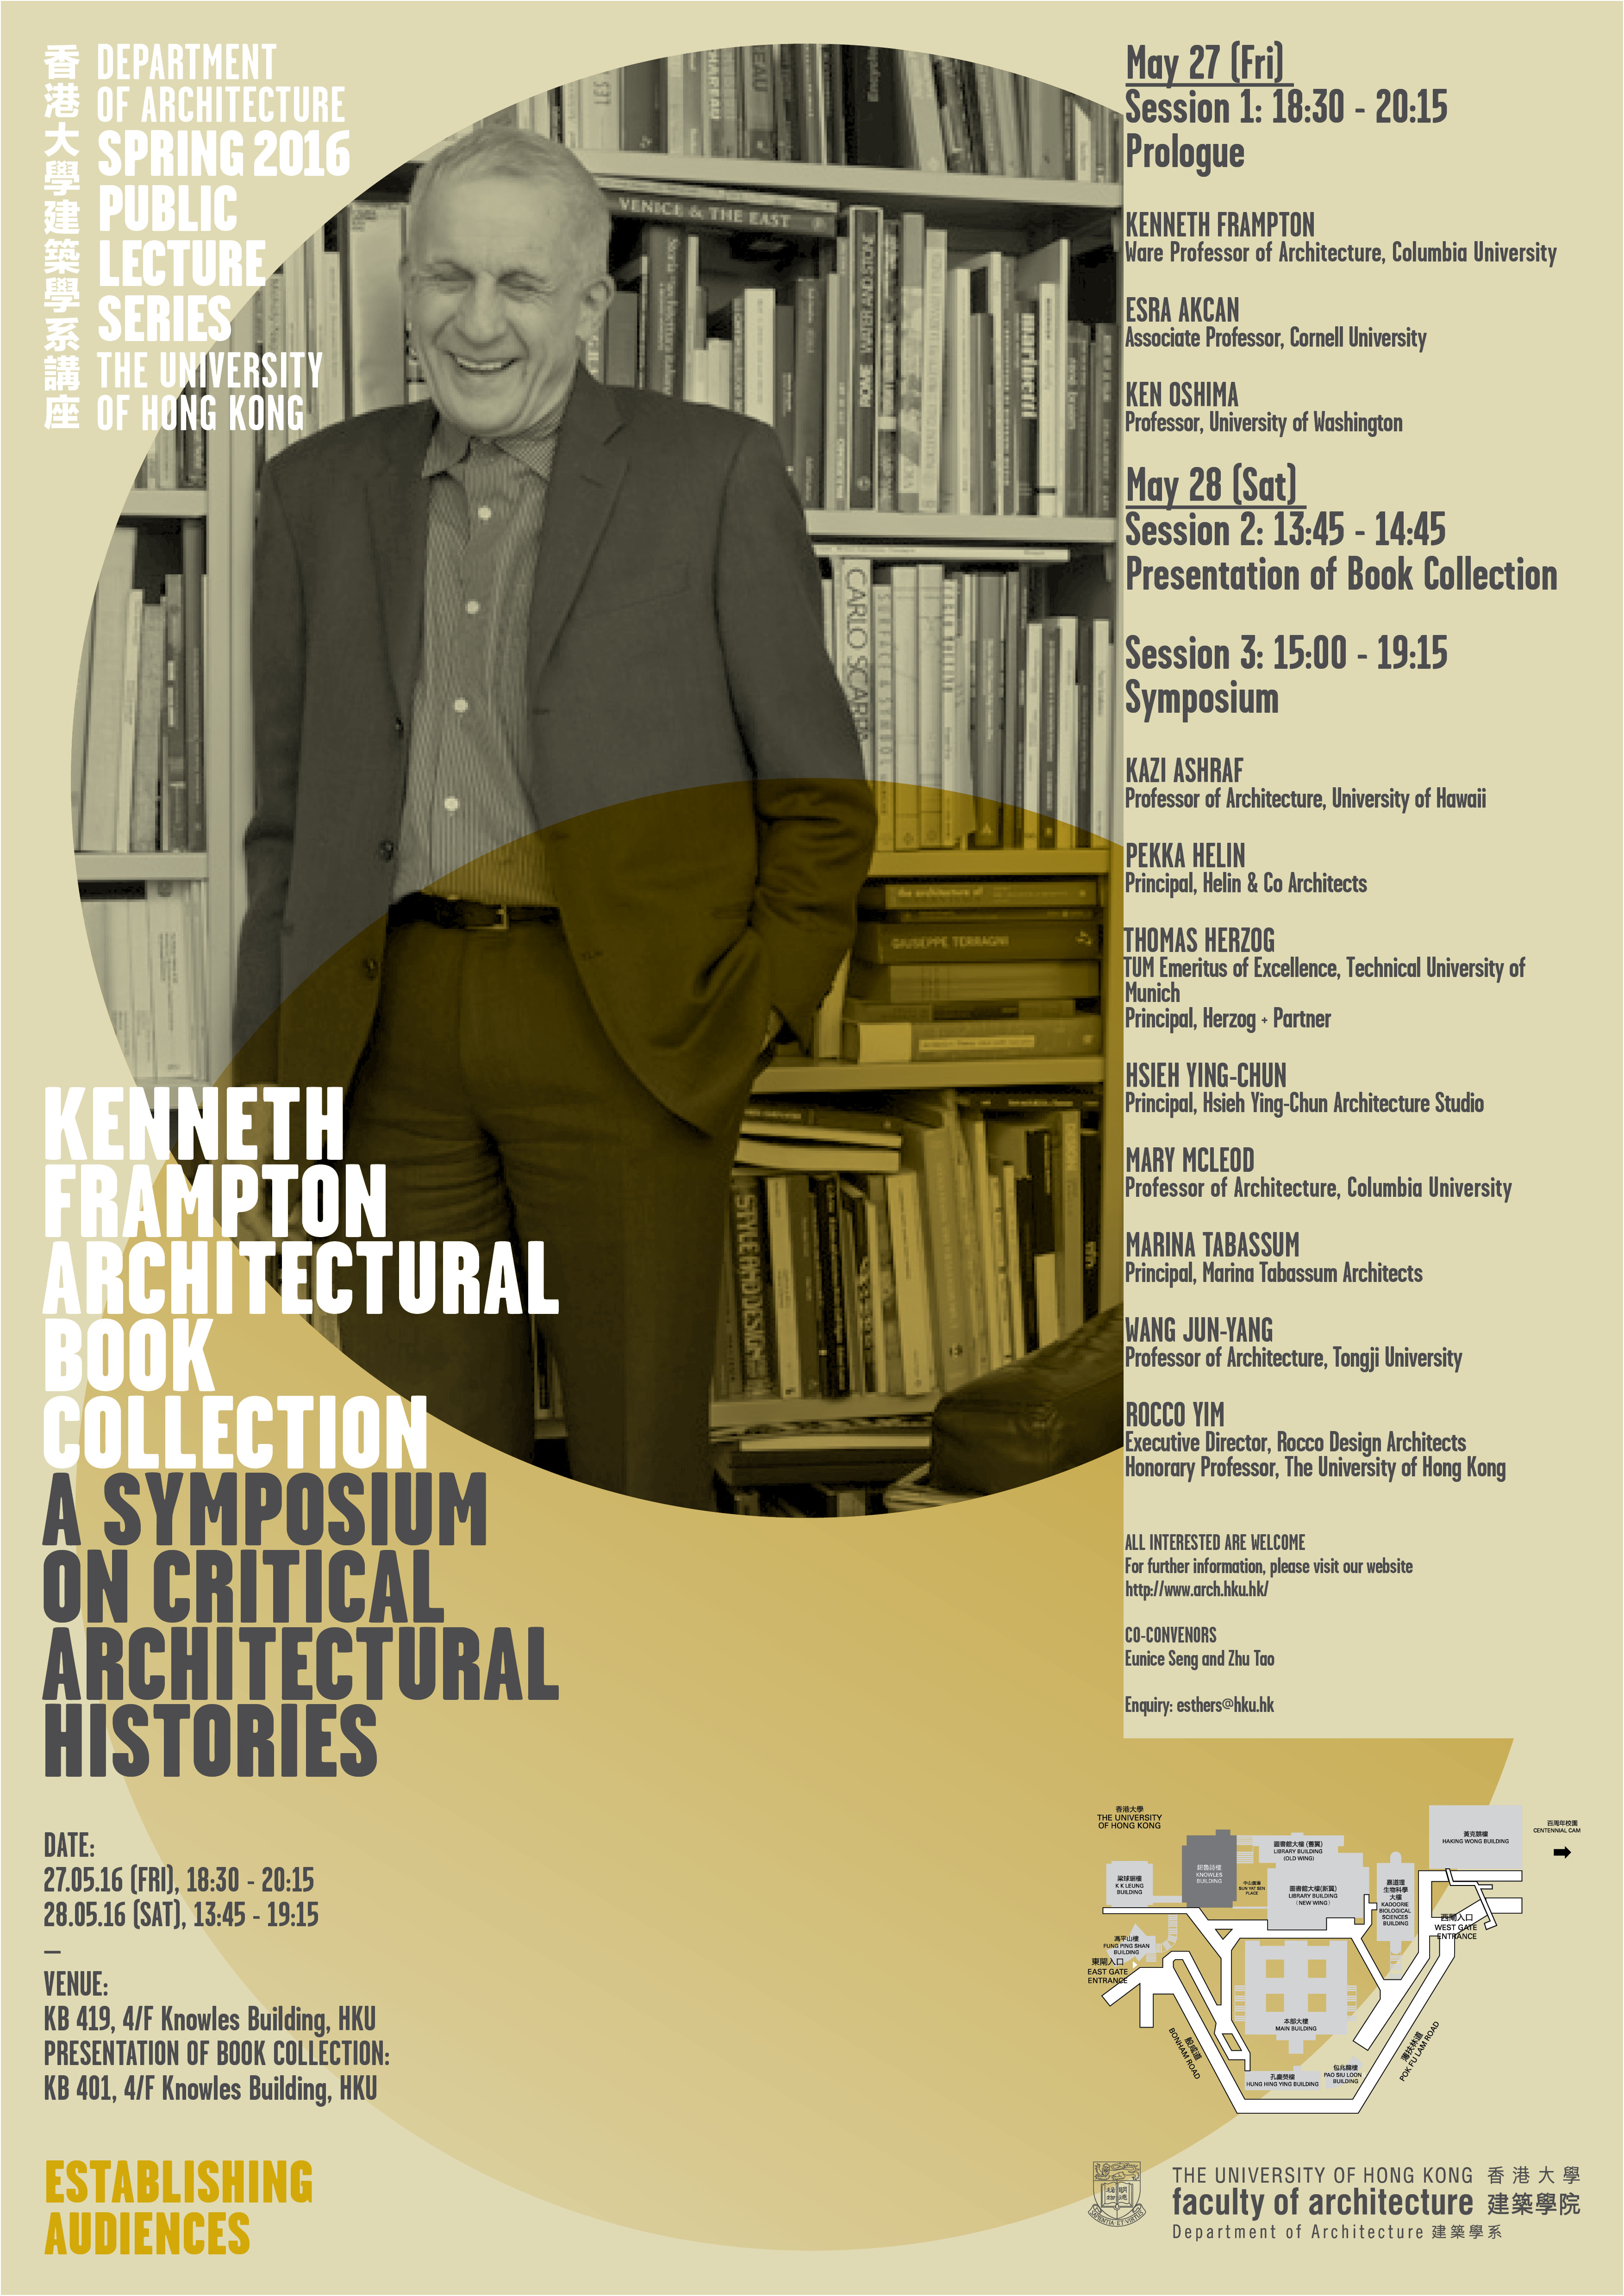 Kenneth Frampton Architectural Book Collection:  A Symposium on Critical Architectural Histories